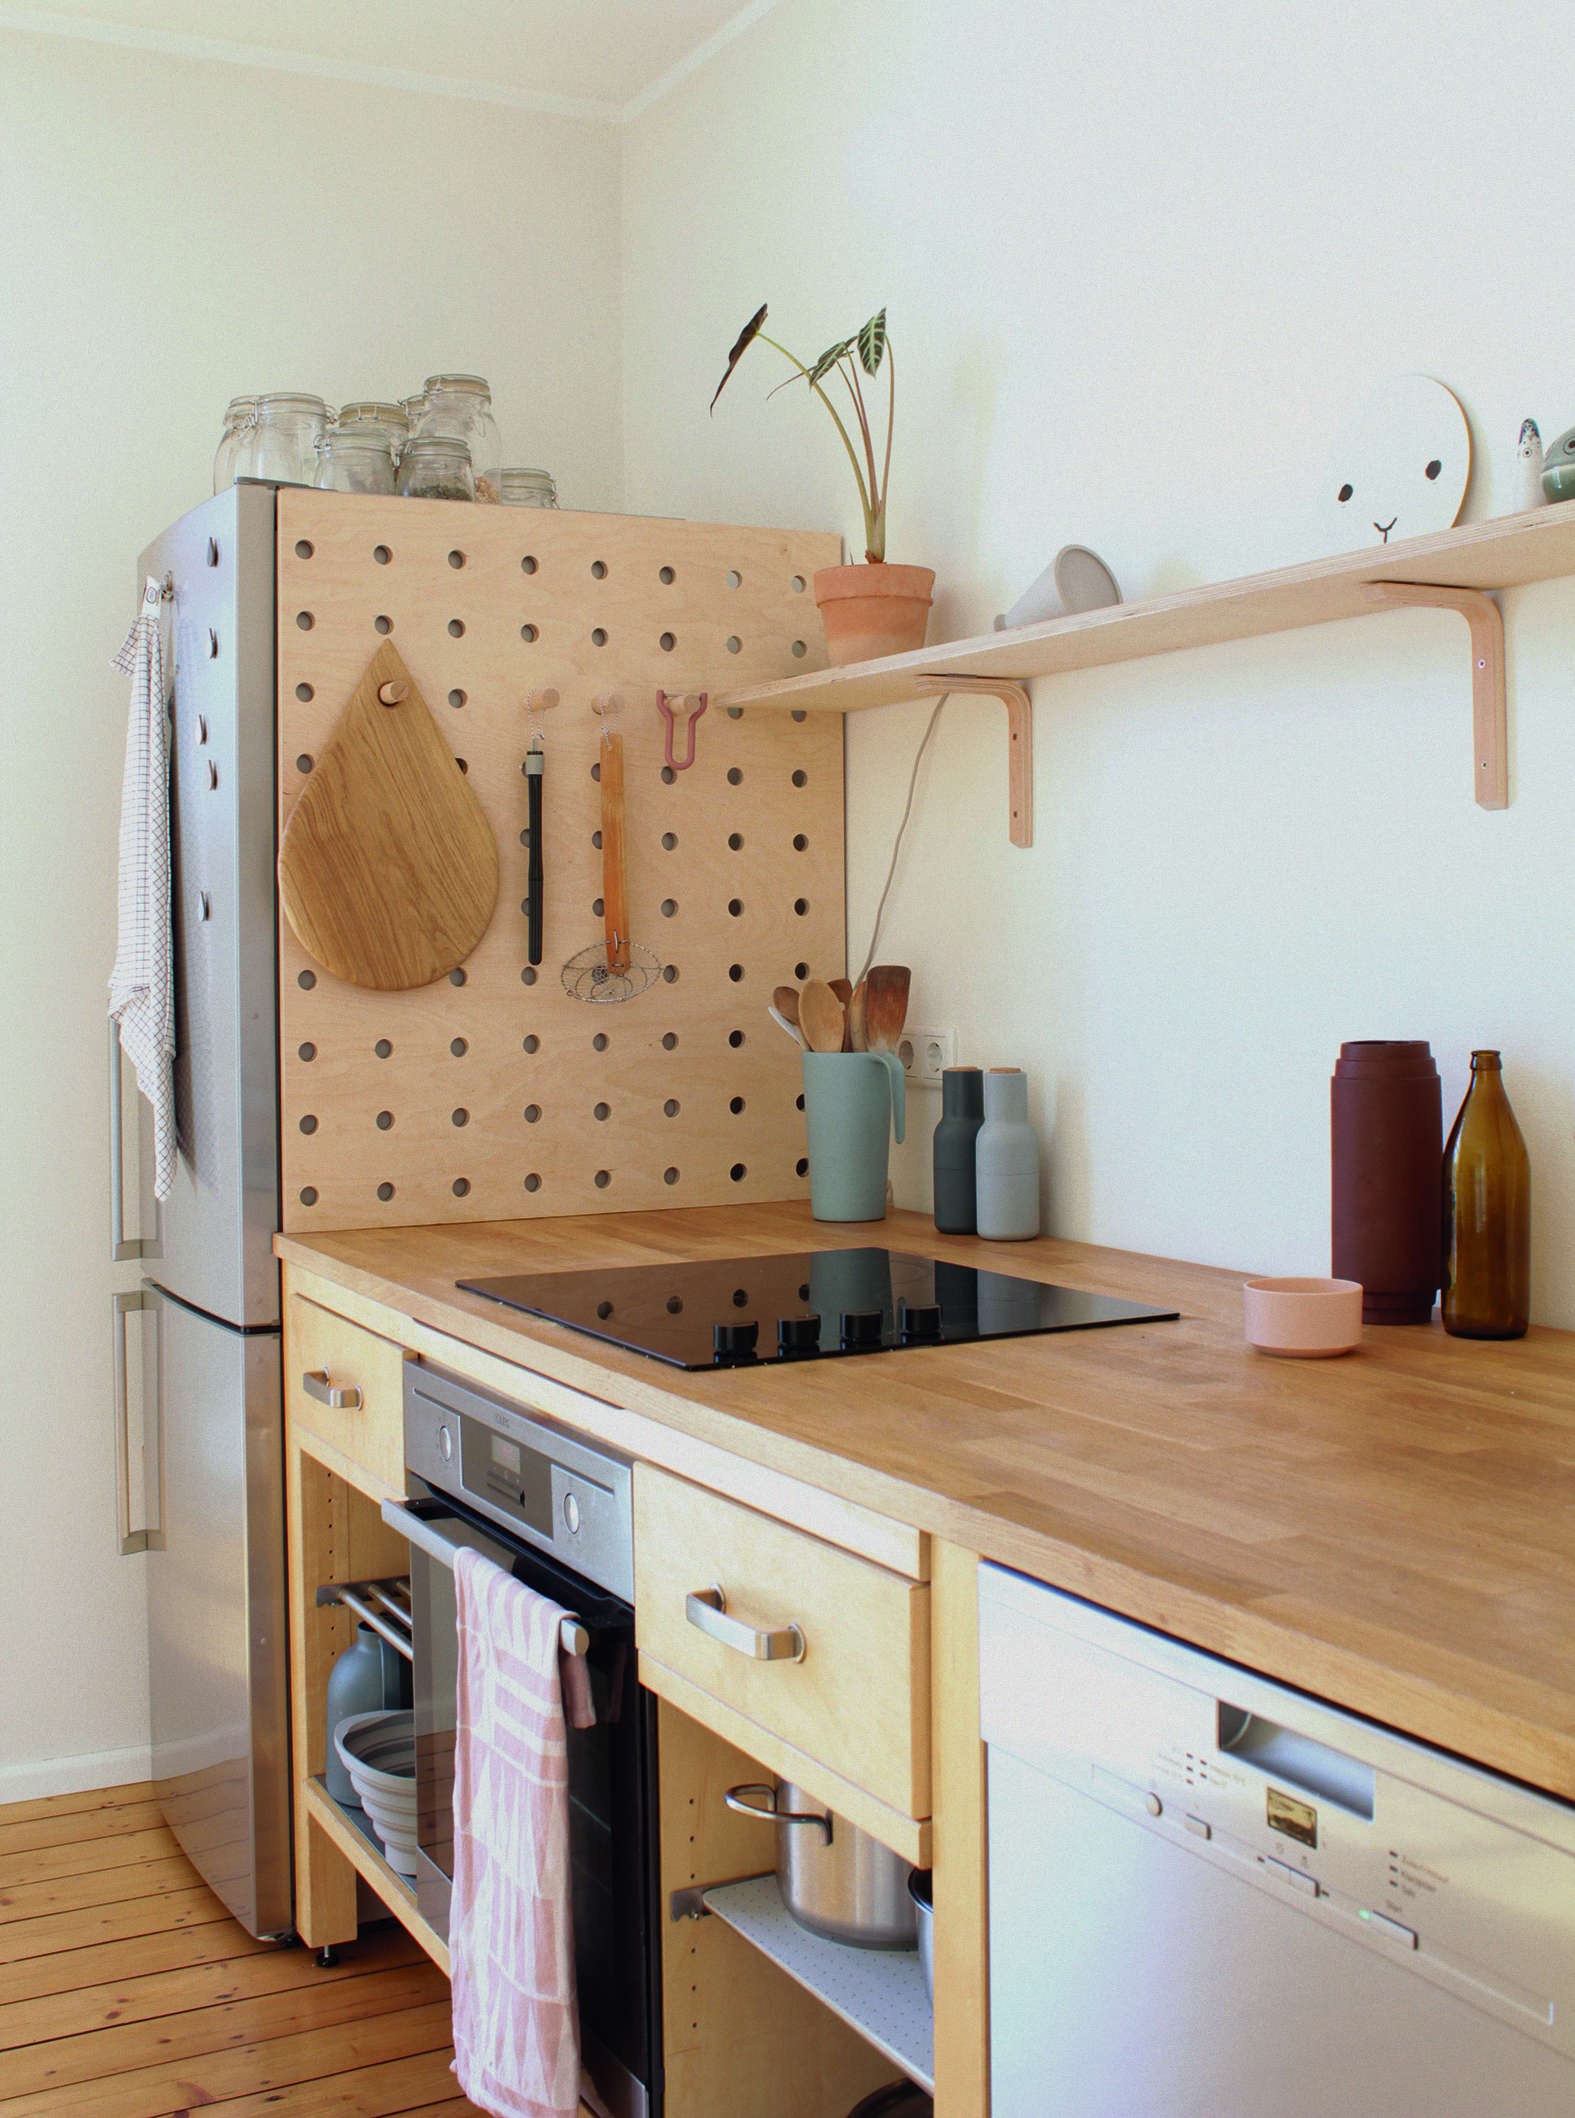 13 Favorites Pegboard Storage Organizers The Organized Home